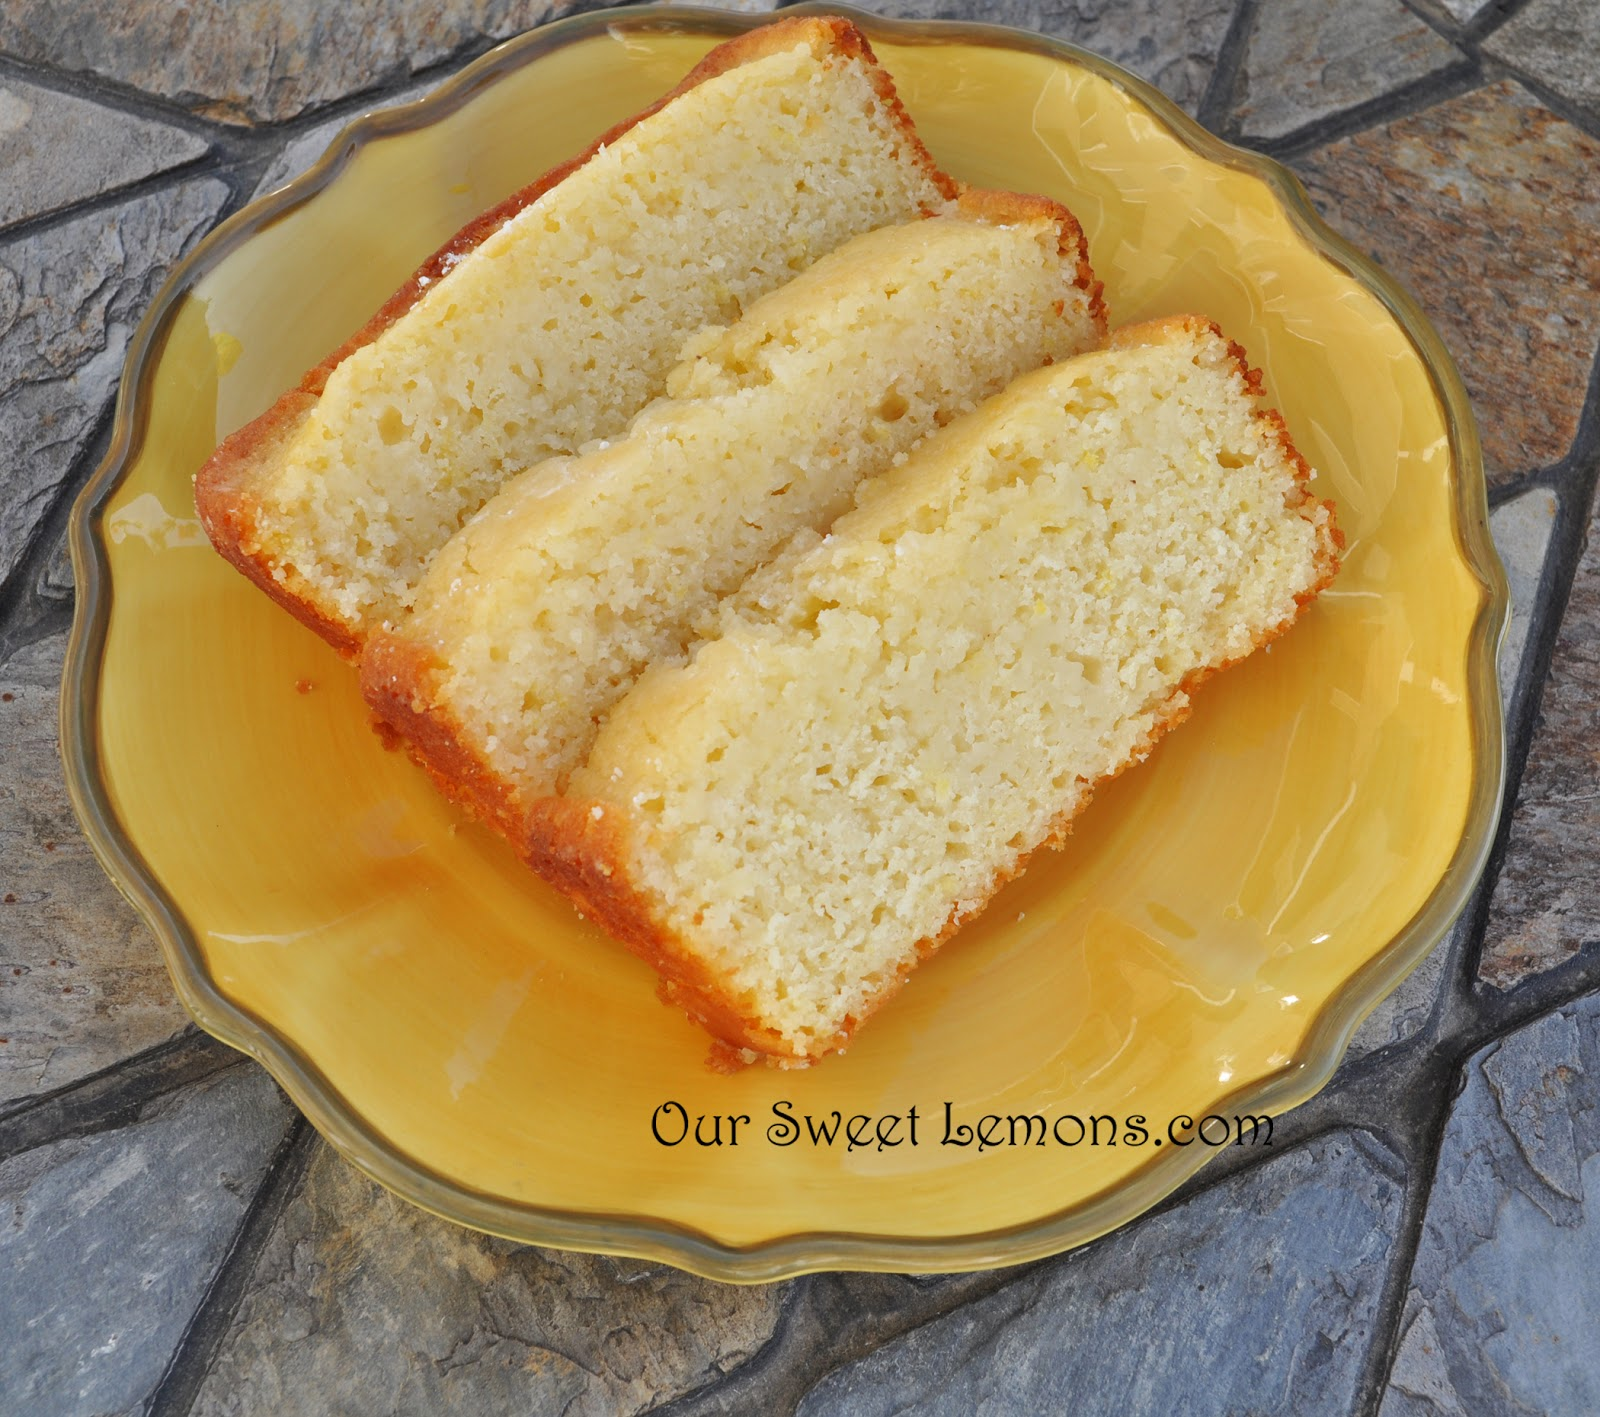 Our Sweet Lemons: Sweet Lemon Bread